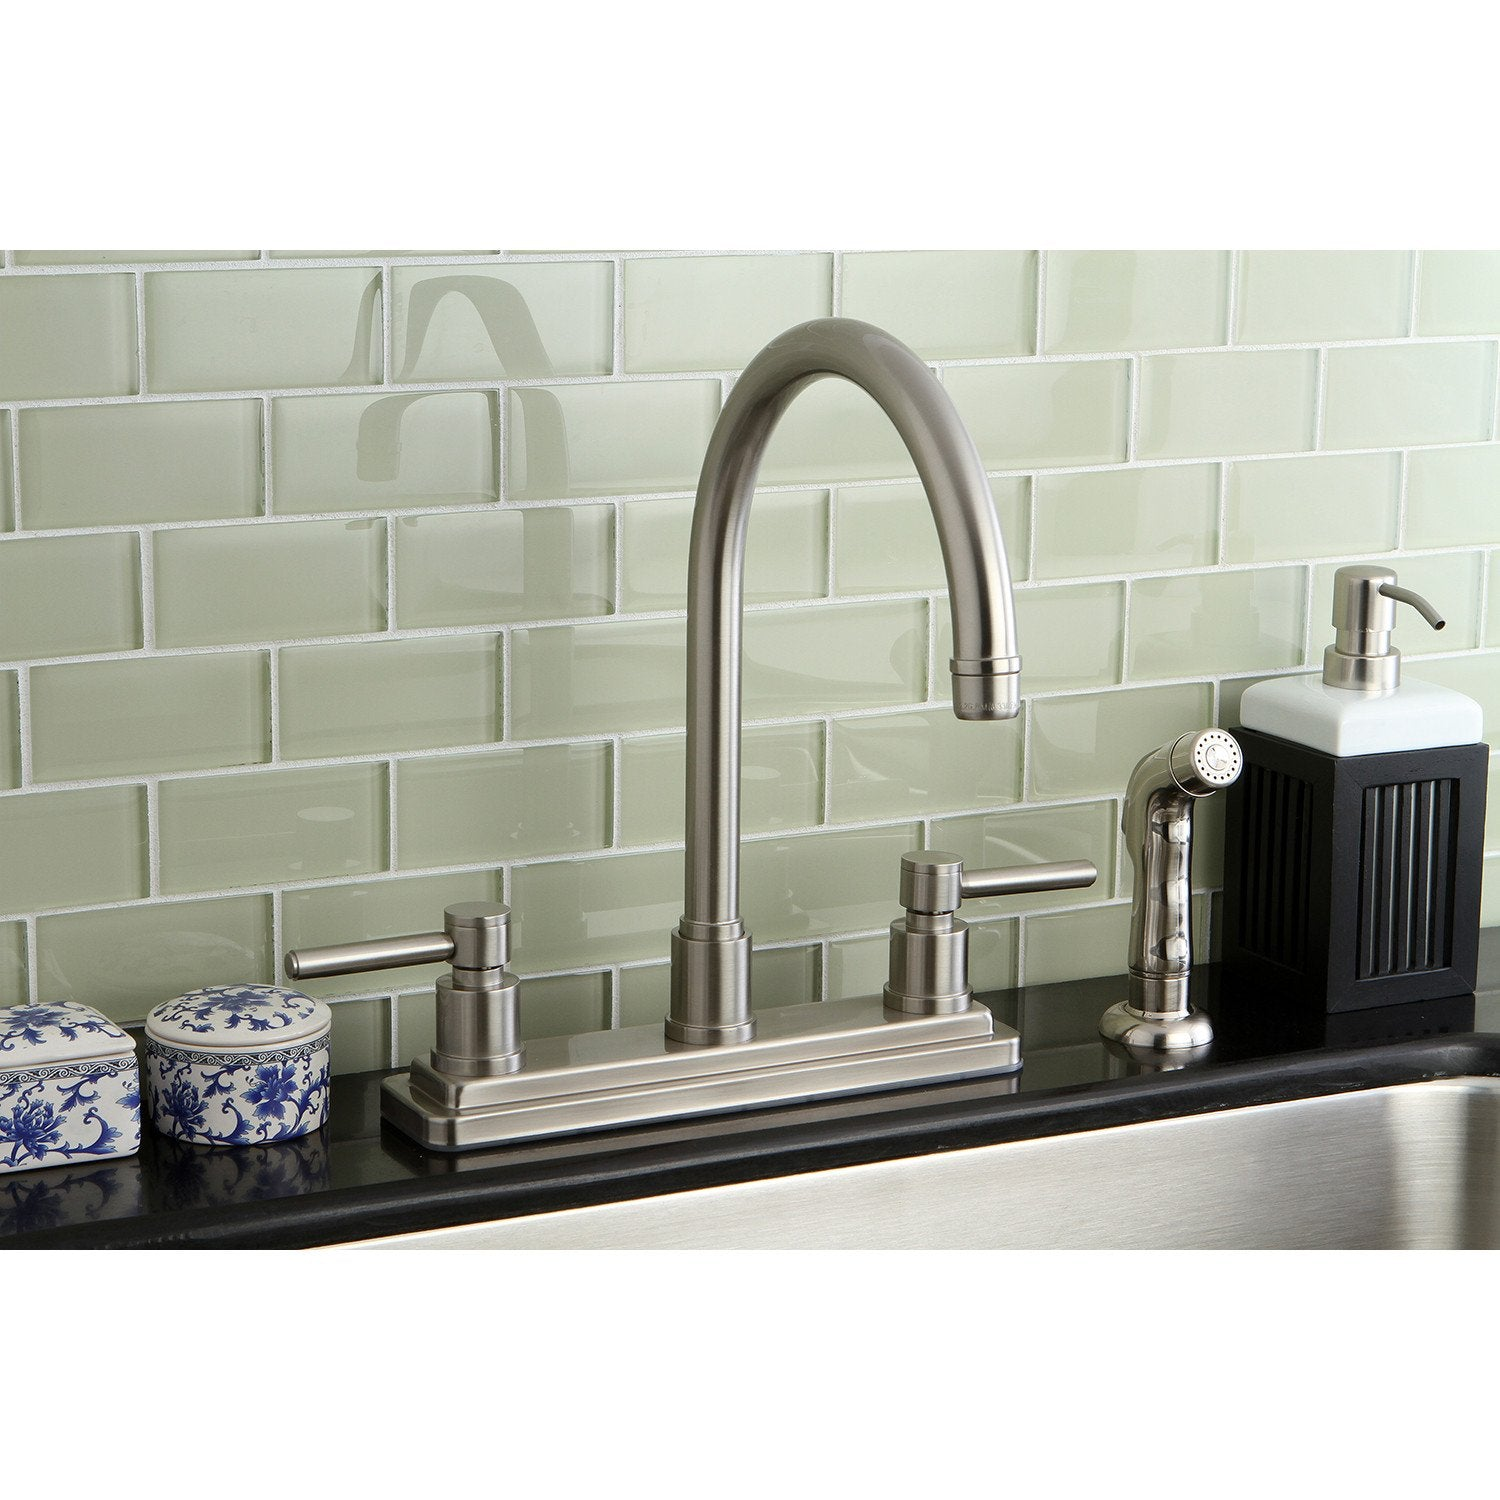 Kingston Brass Concord Satin Nickel 2 Handle Kitchen Faucet w ...